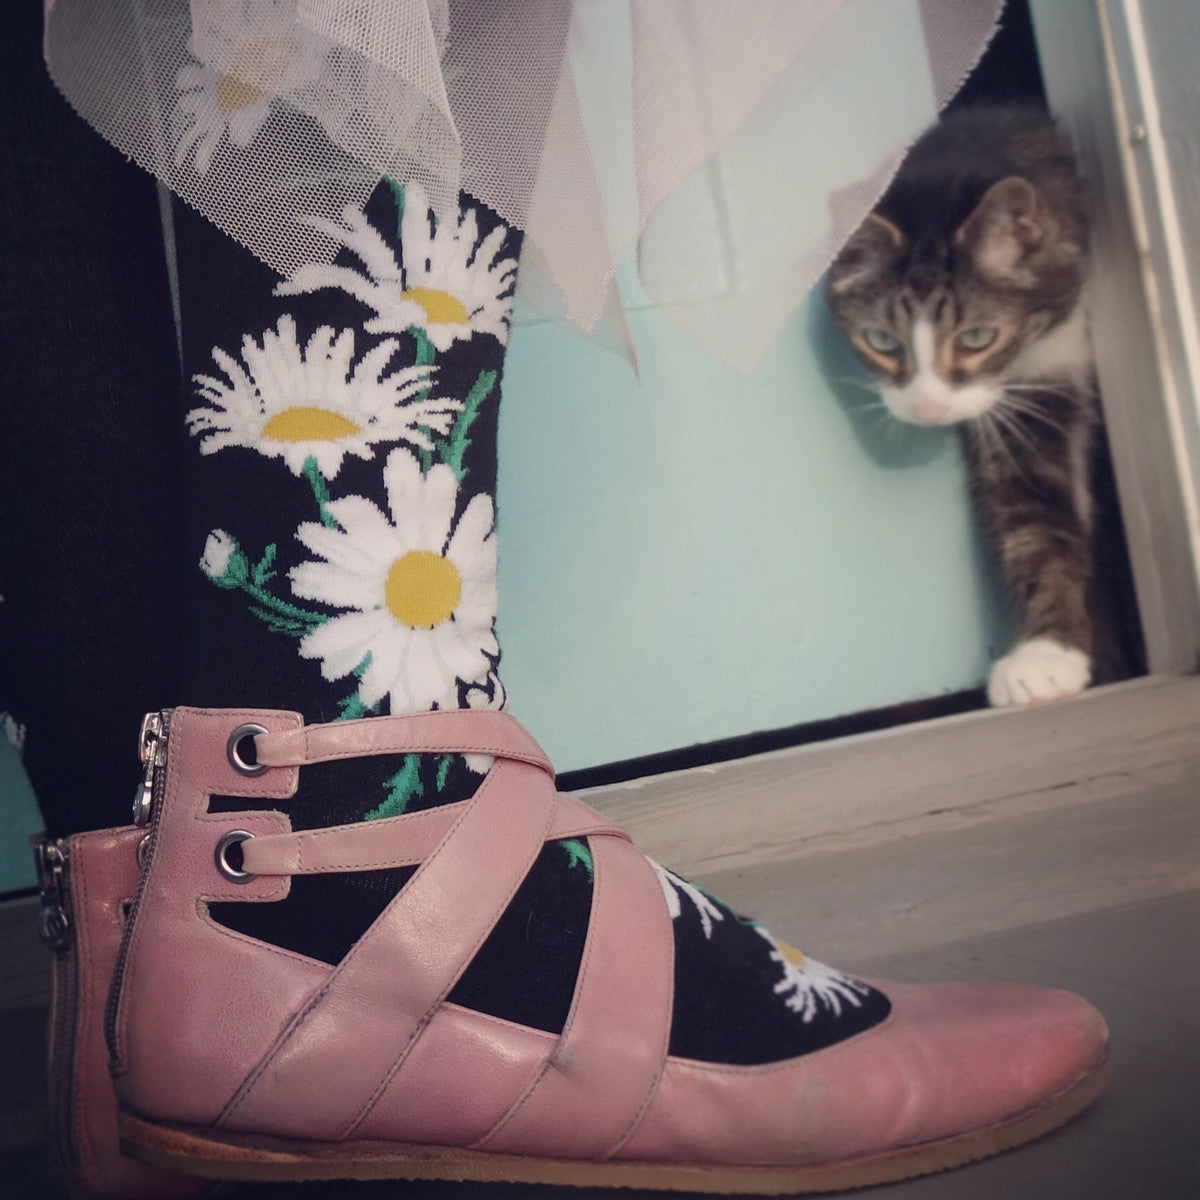 A cat looks at the beautiful floral socks his owner wears, which are adorned with daisy flowers on a black background.